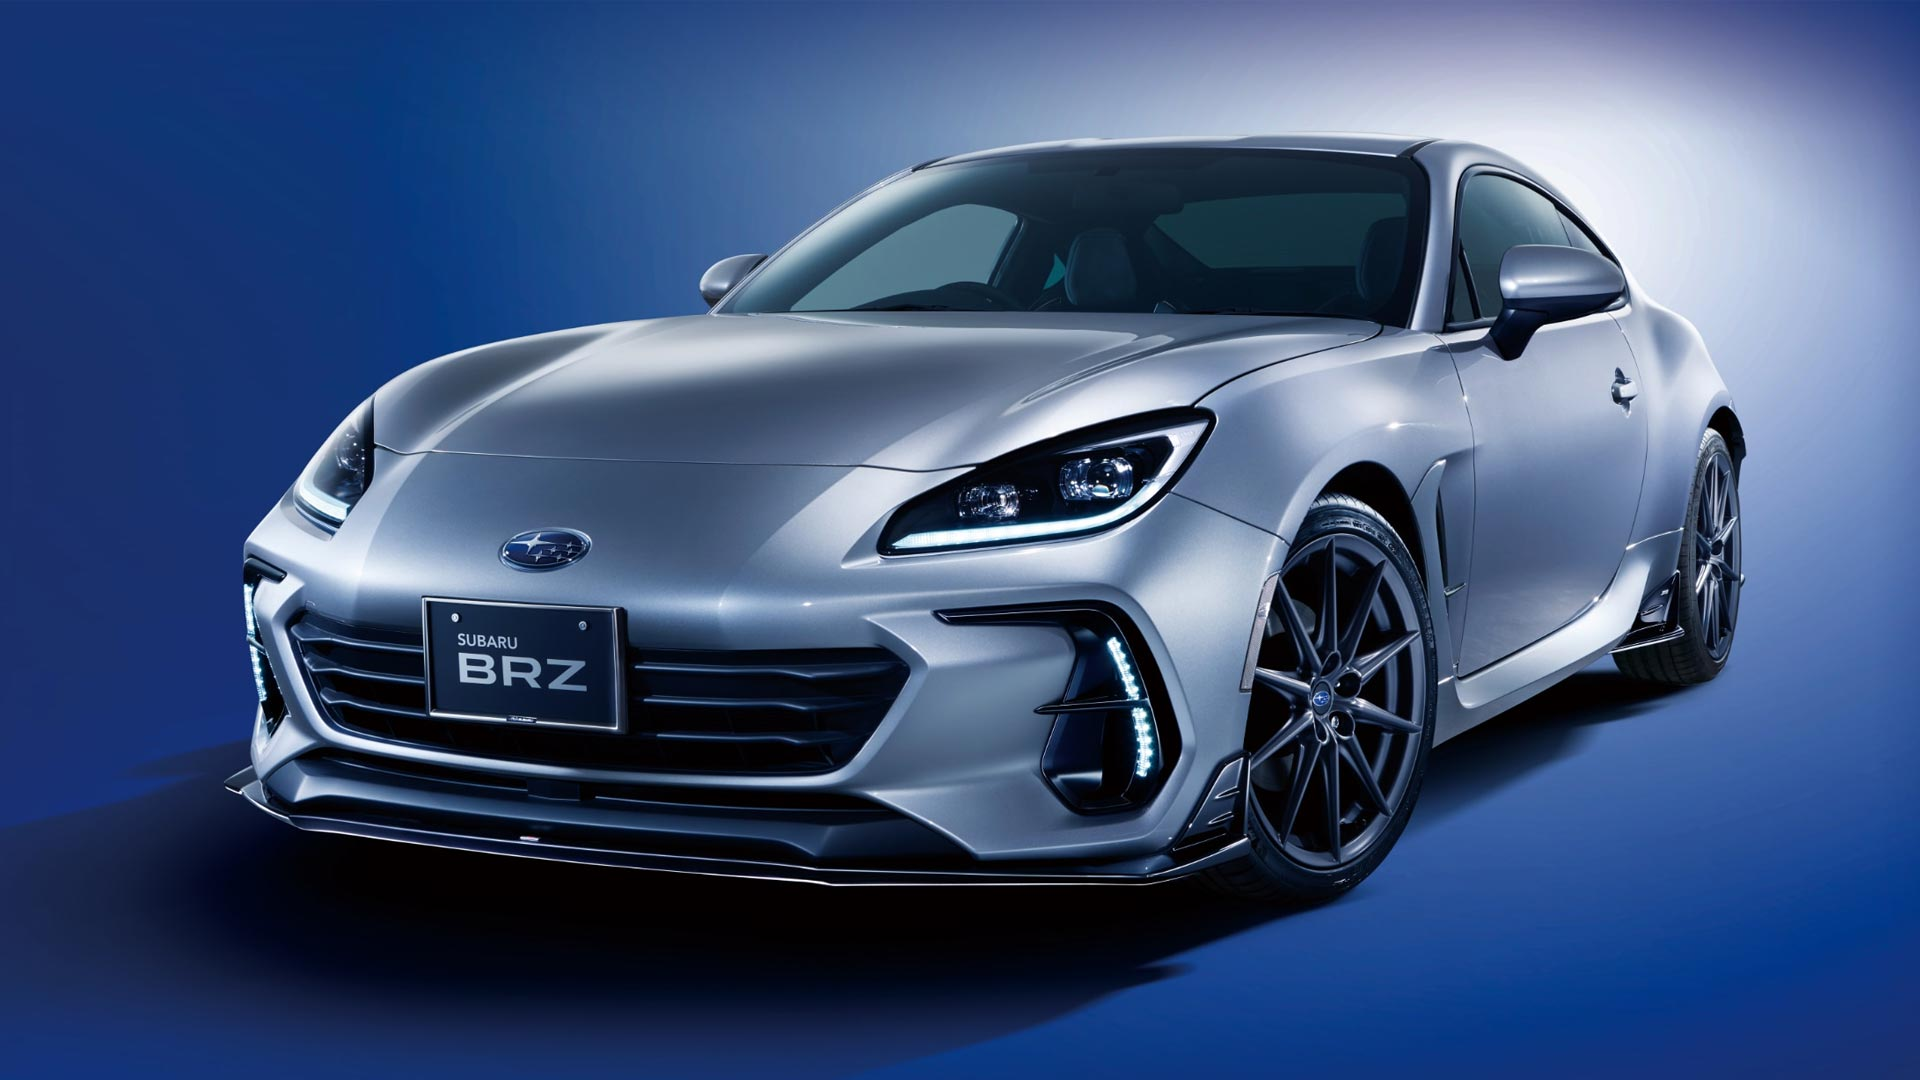 The all-new Subaru BRZ